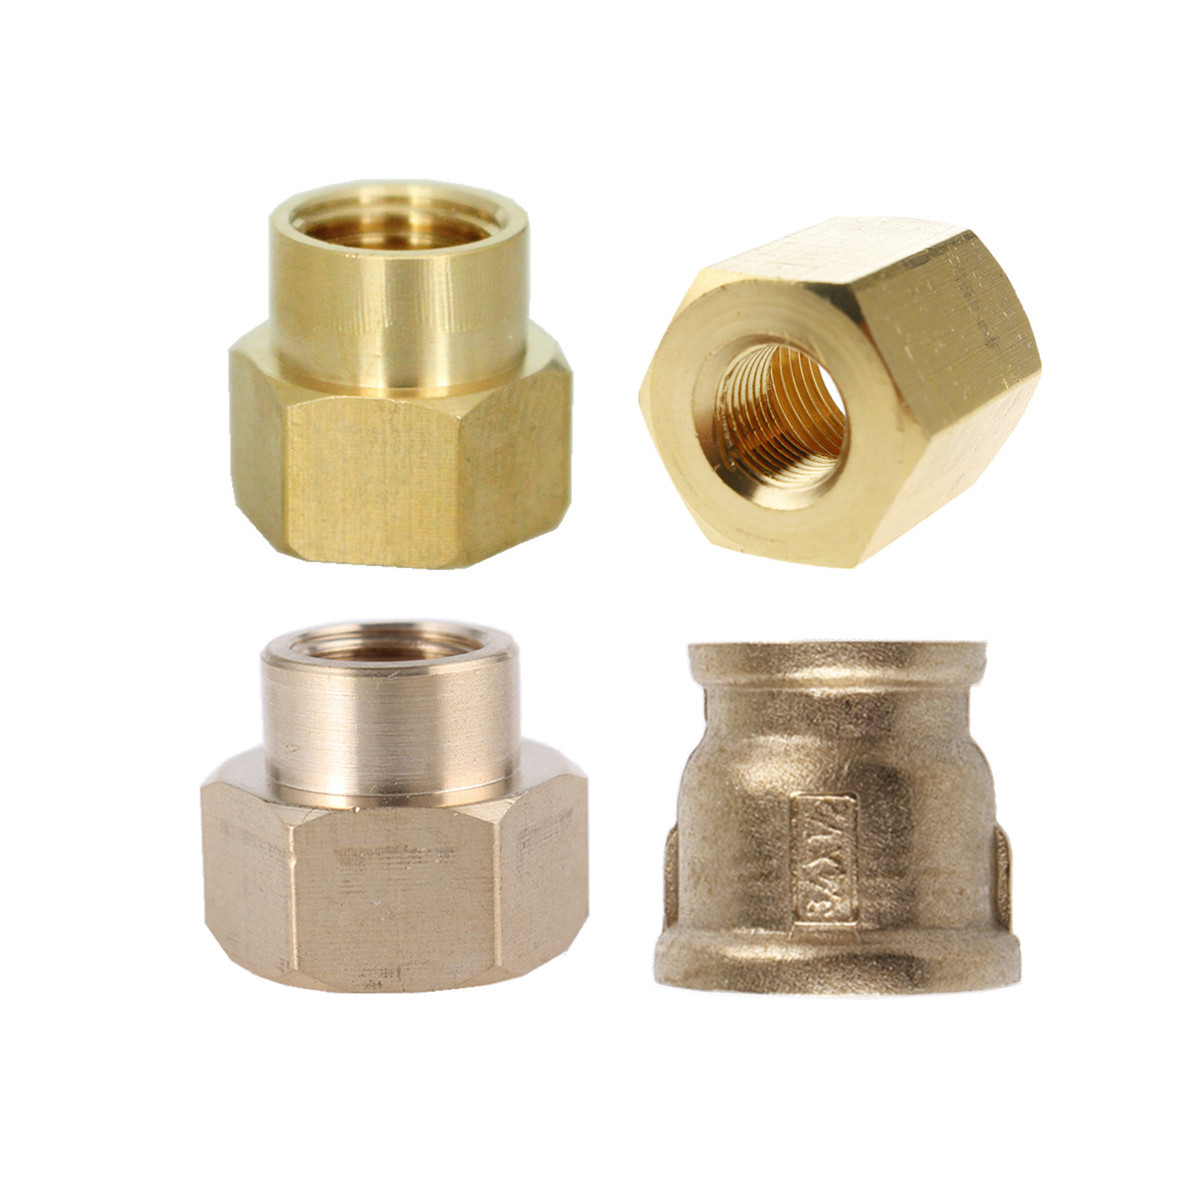 """1//8/"""" 1//4/"""" 3//8/"""" 1//2/"""" 3//4/"""" 1/""""Female x Male Thread Connector Joiner Fitting Adapter"""